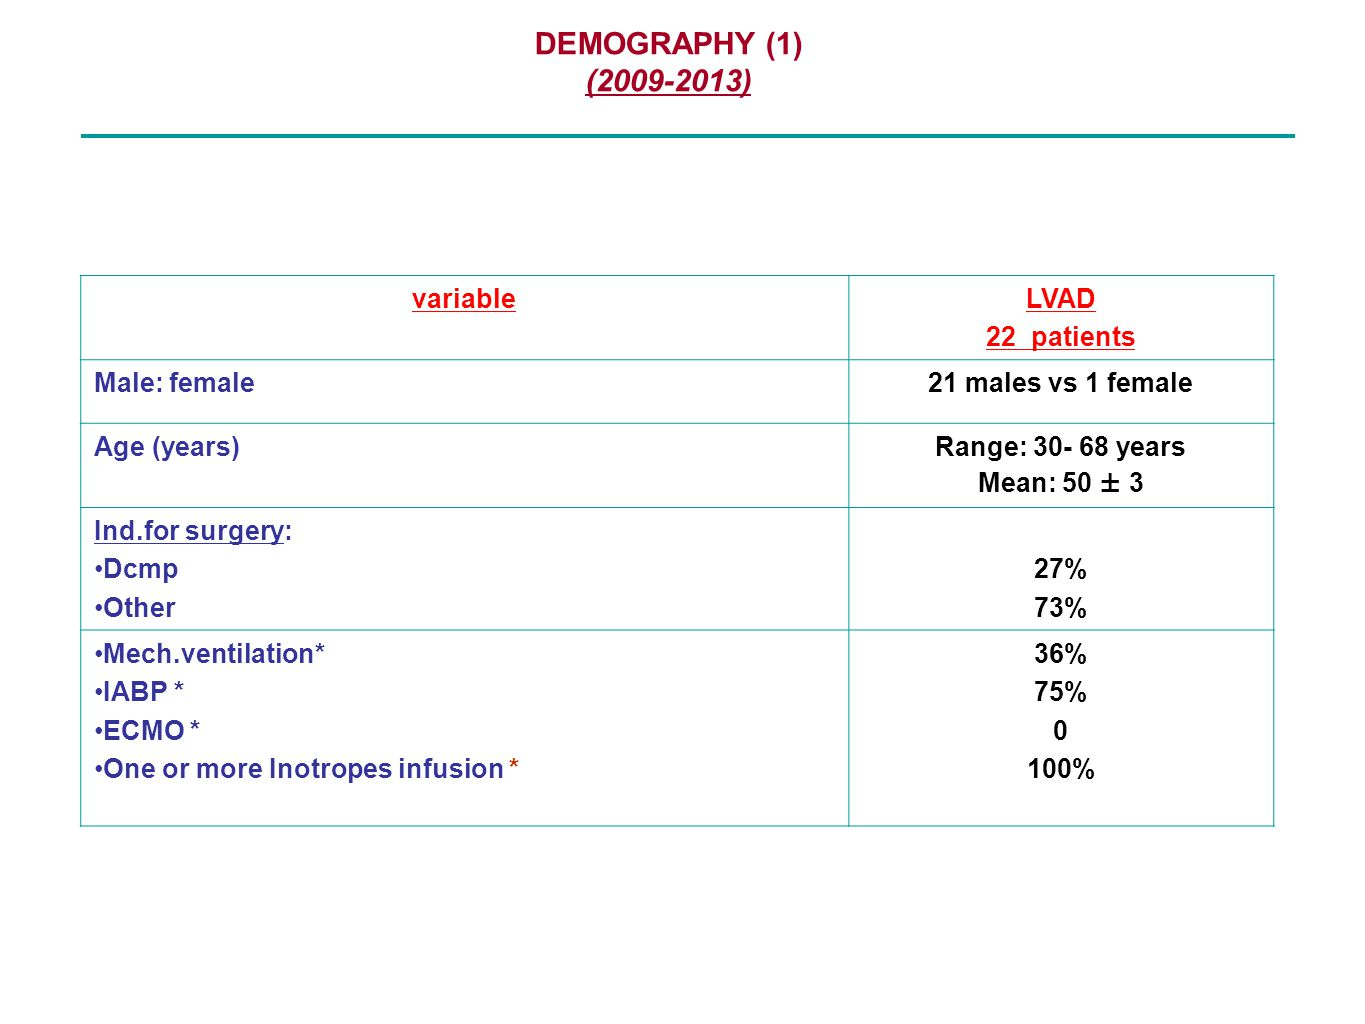 DEMOGRAPHY (1) (2009-2013) variable LVAD 22 patients Male: female